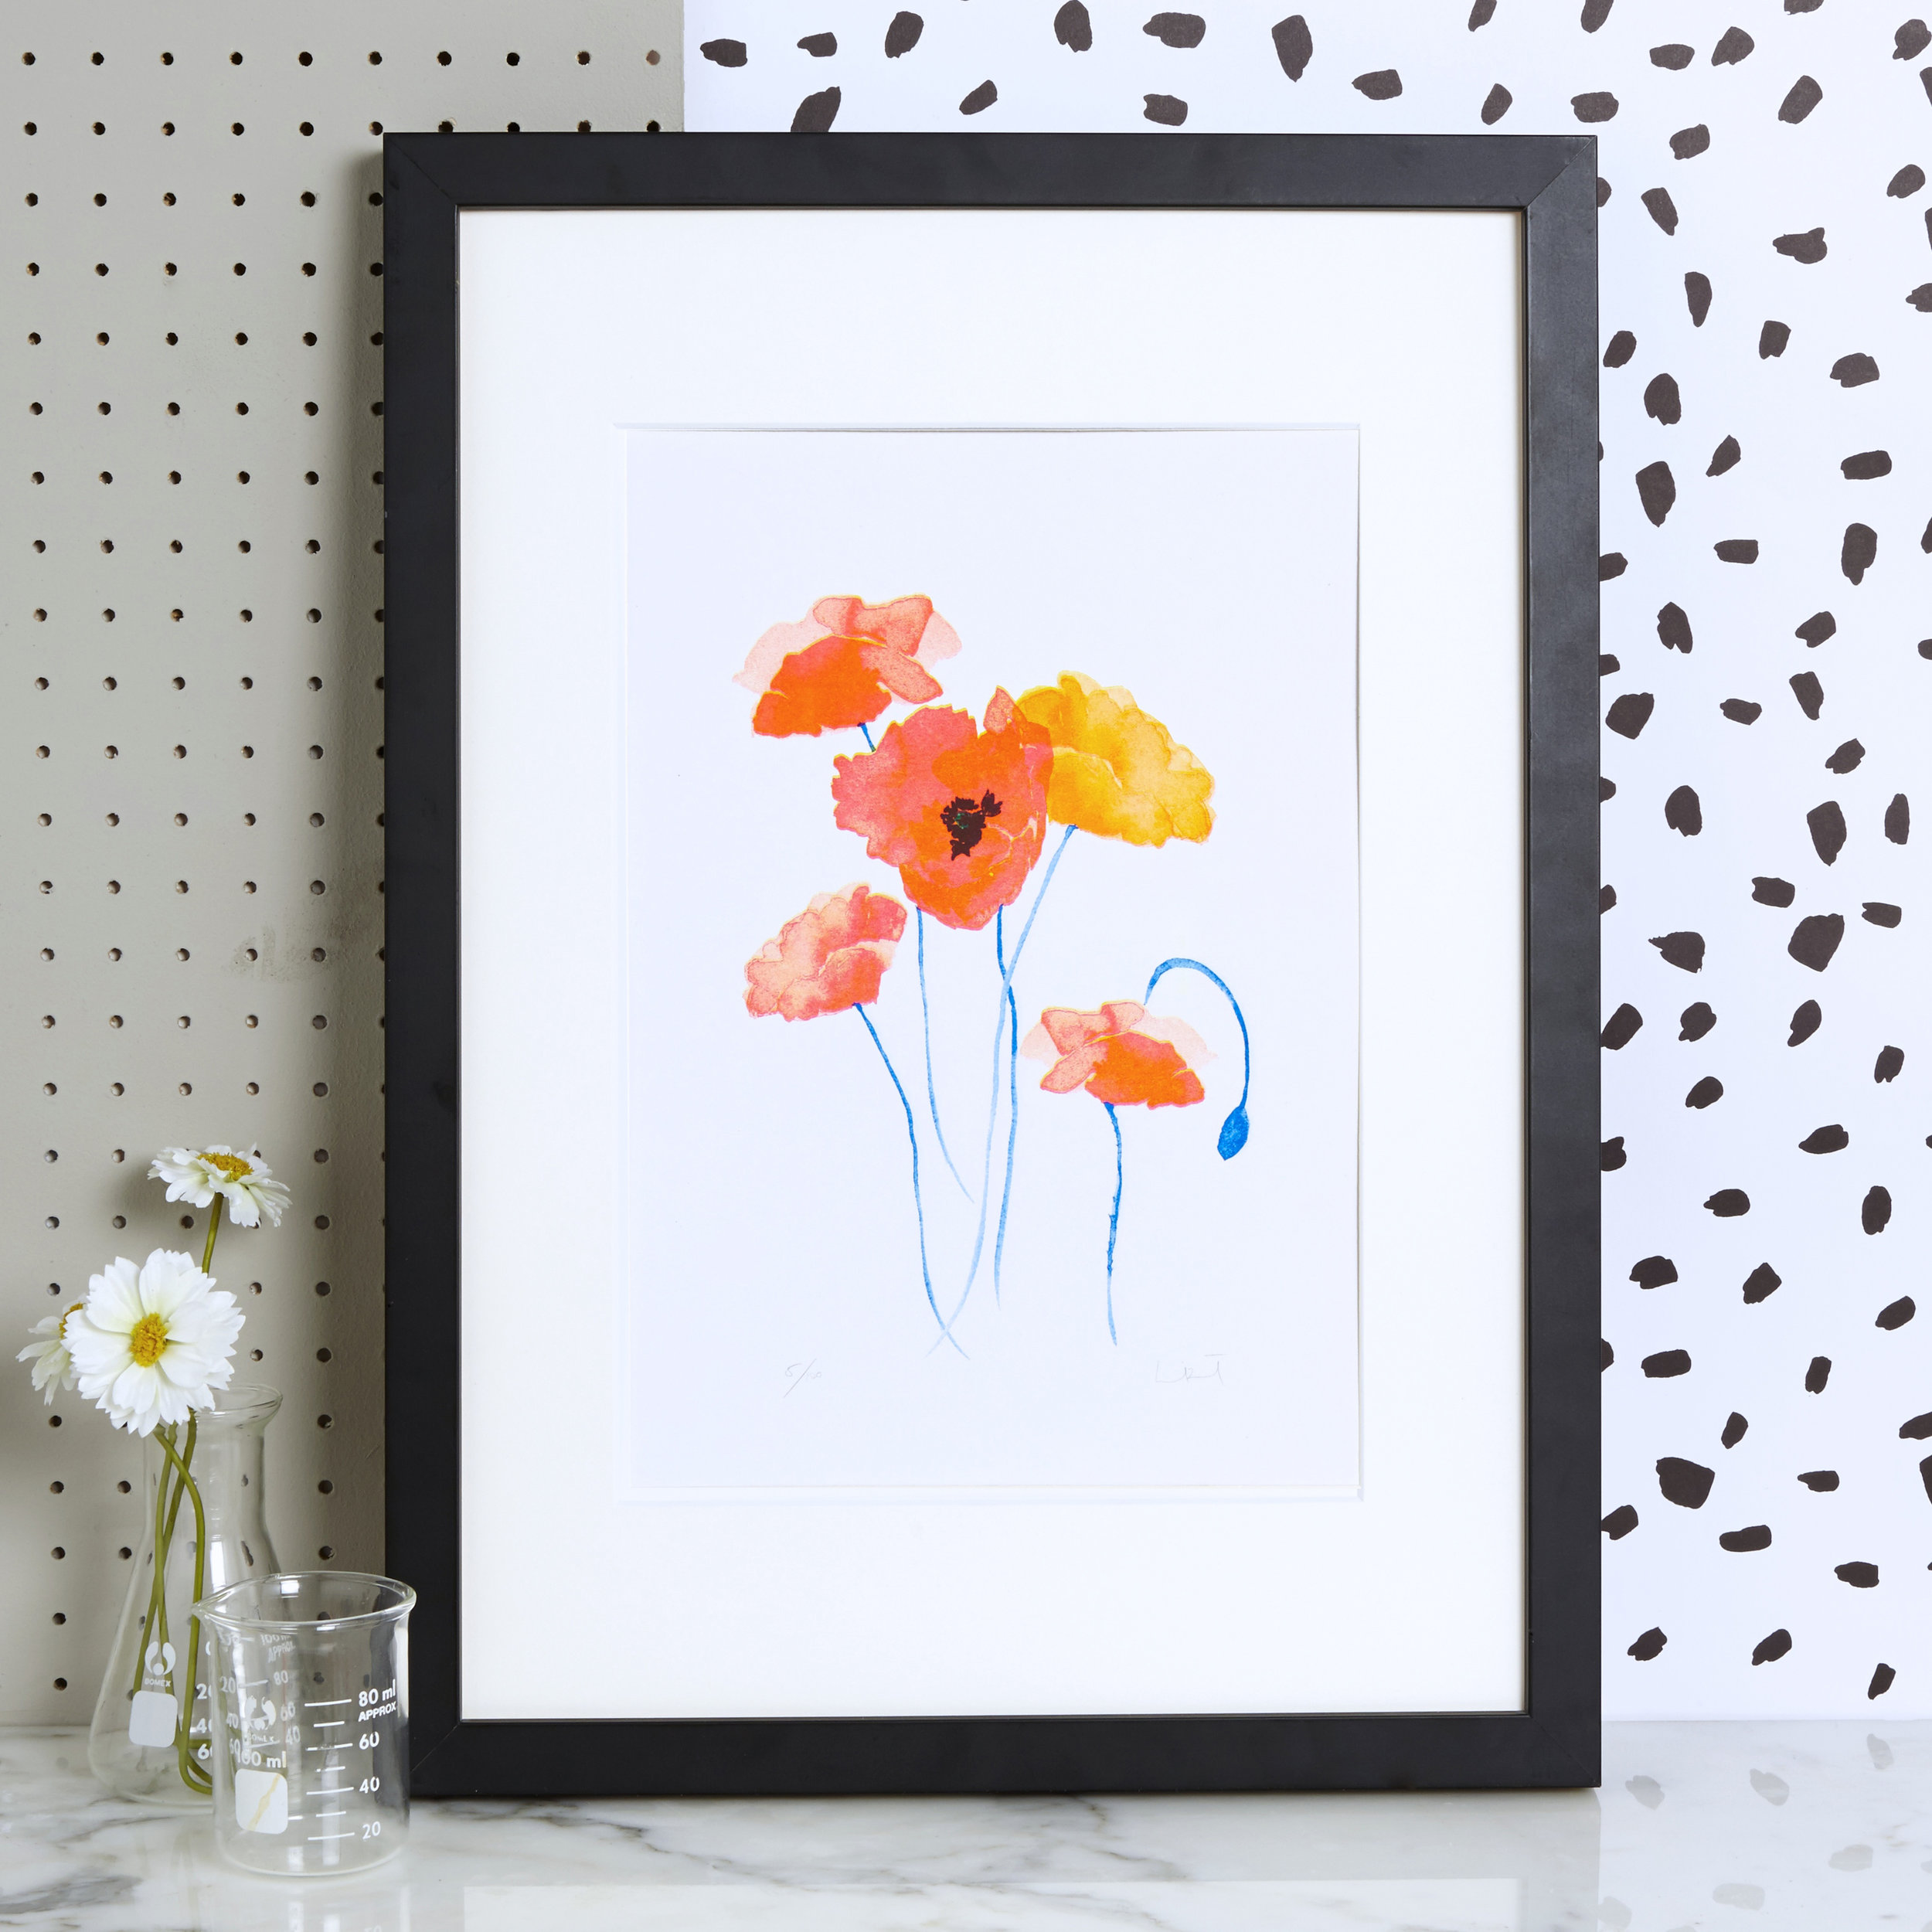 Blank Inside, Poppies Risograph Art Print with wildflower seeds, £18, www.blankinsidedesign.co.uk.jpg